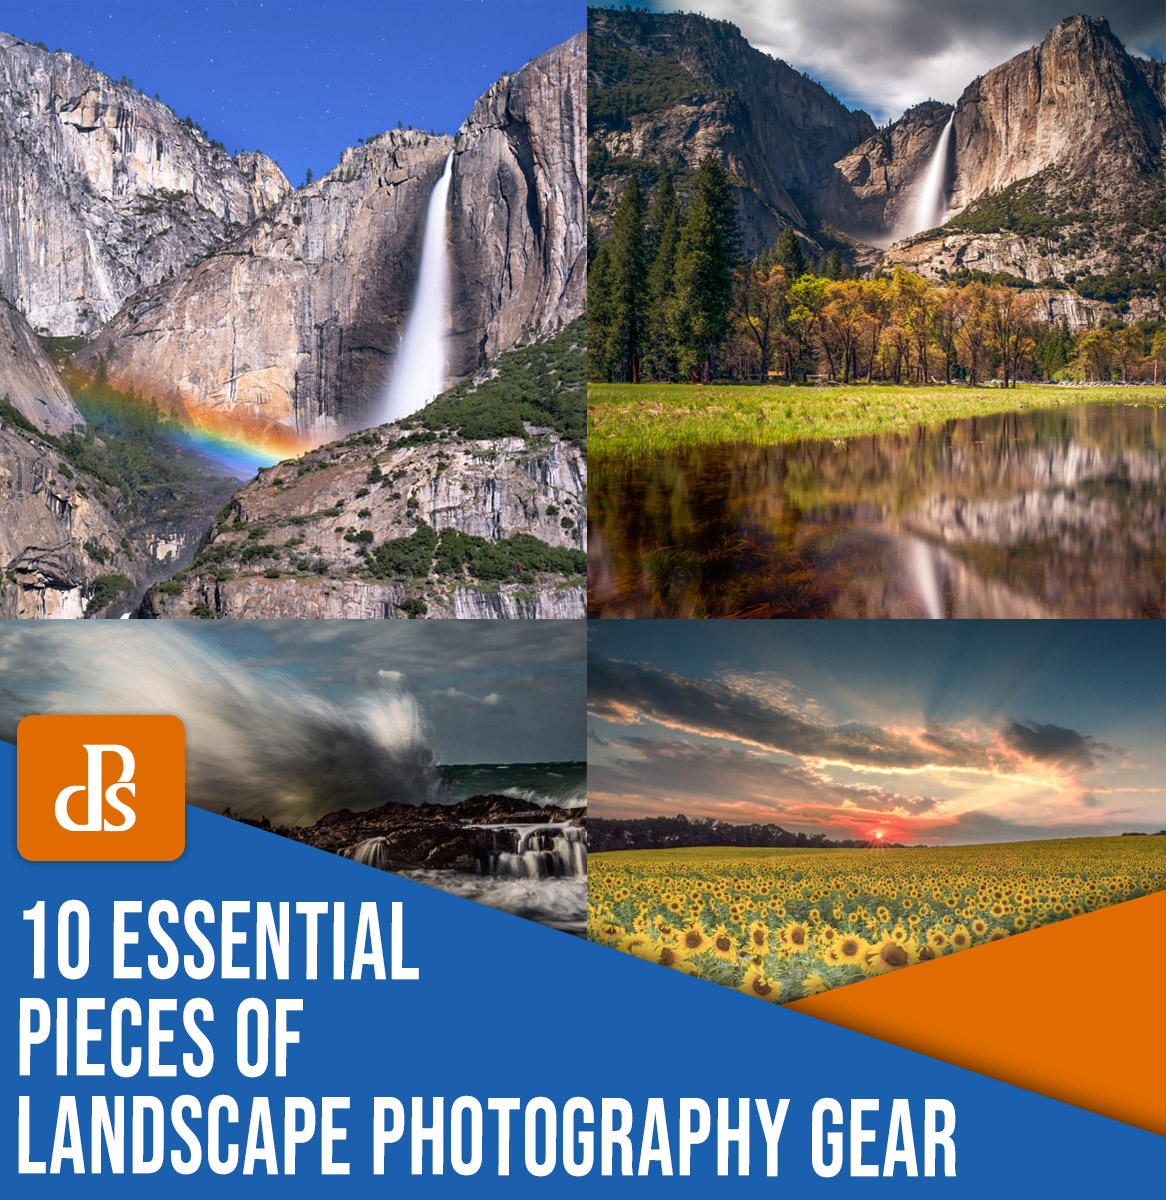 10 essential pieces of landscape photography gear